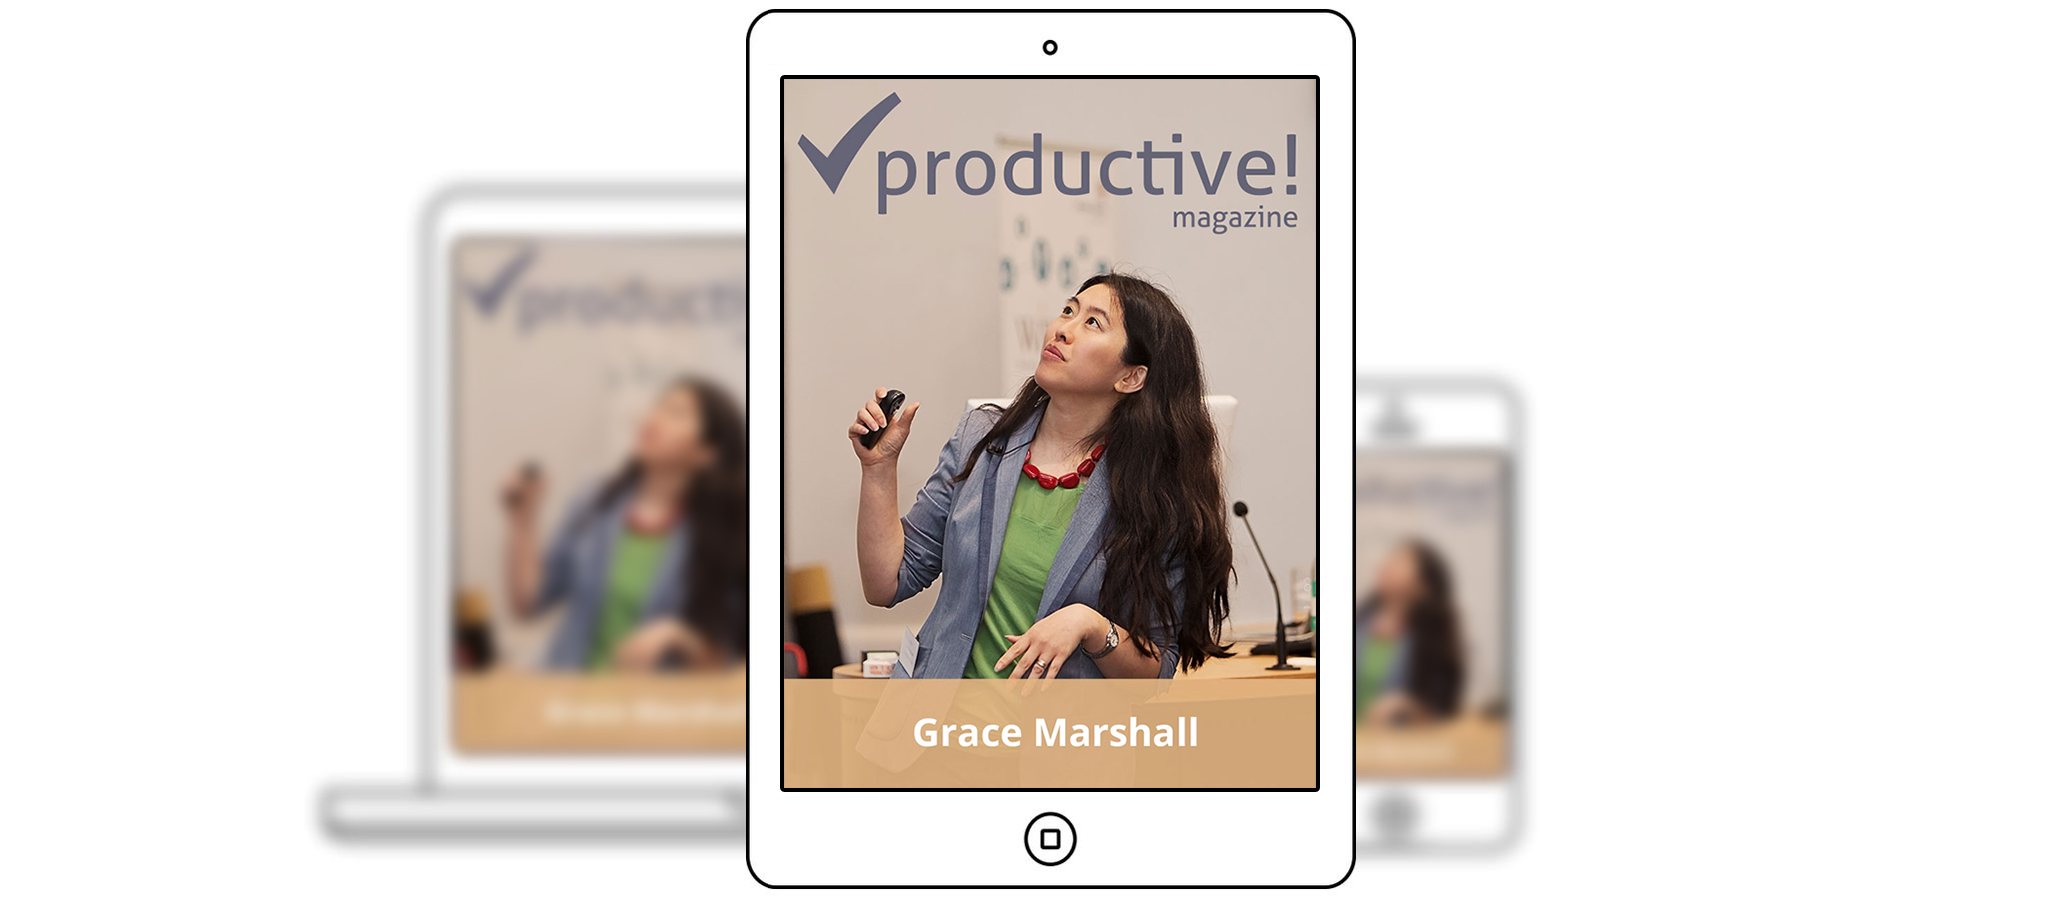 №31 with Grace Marshall